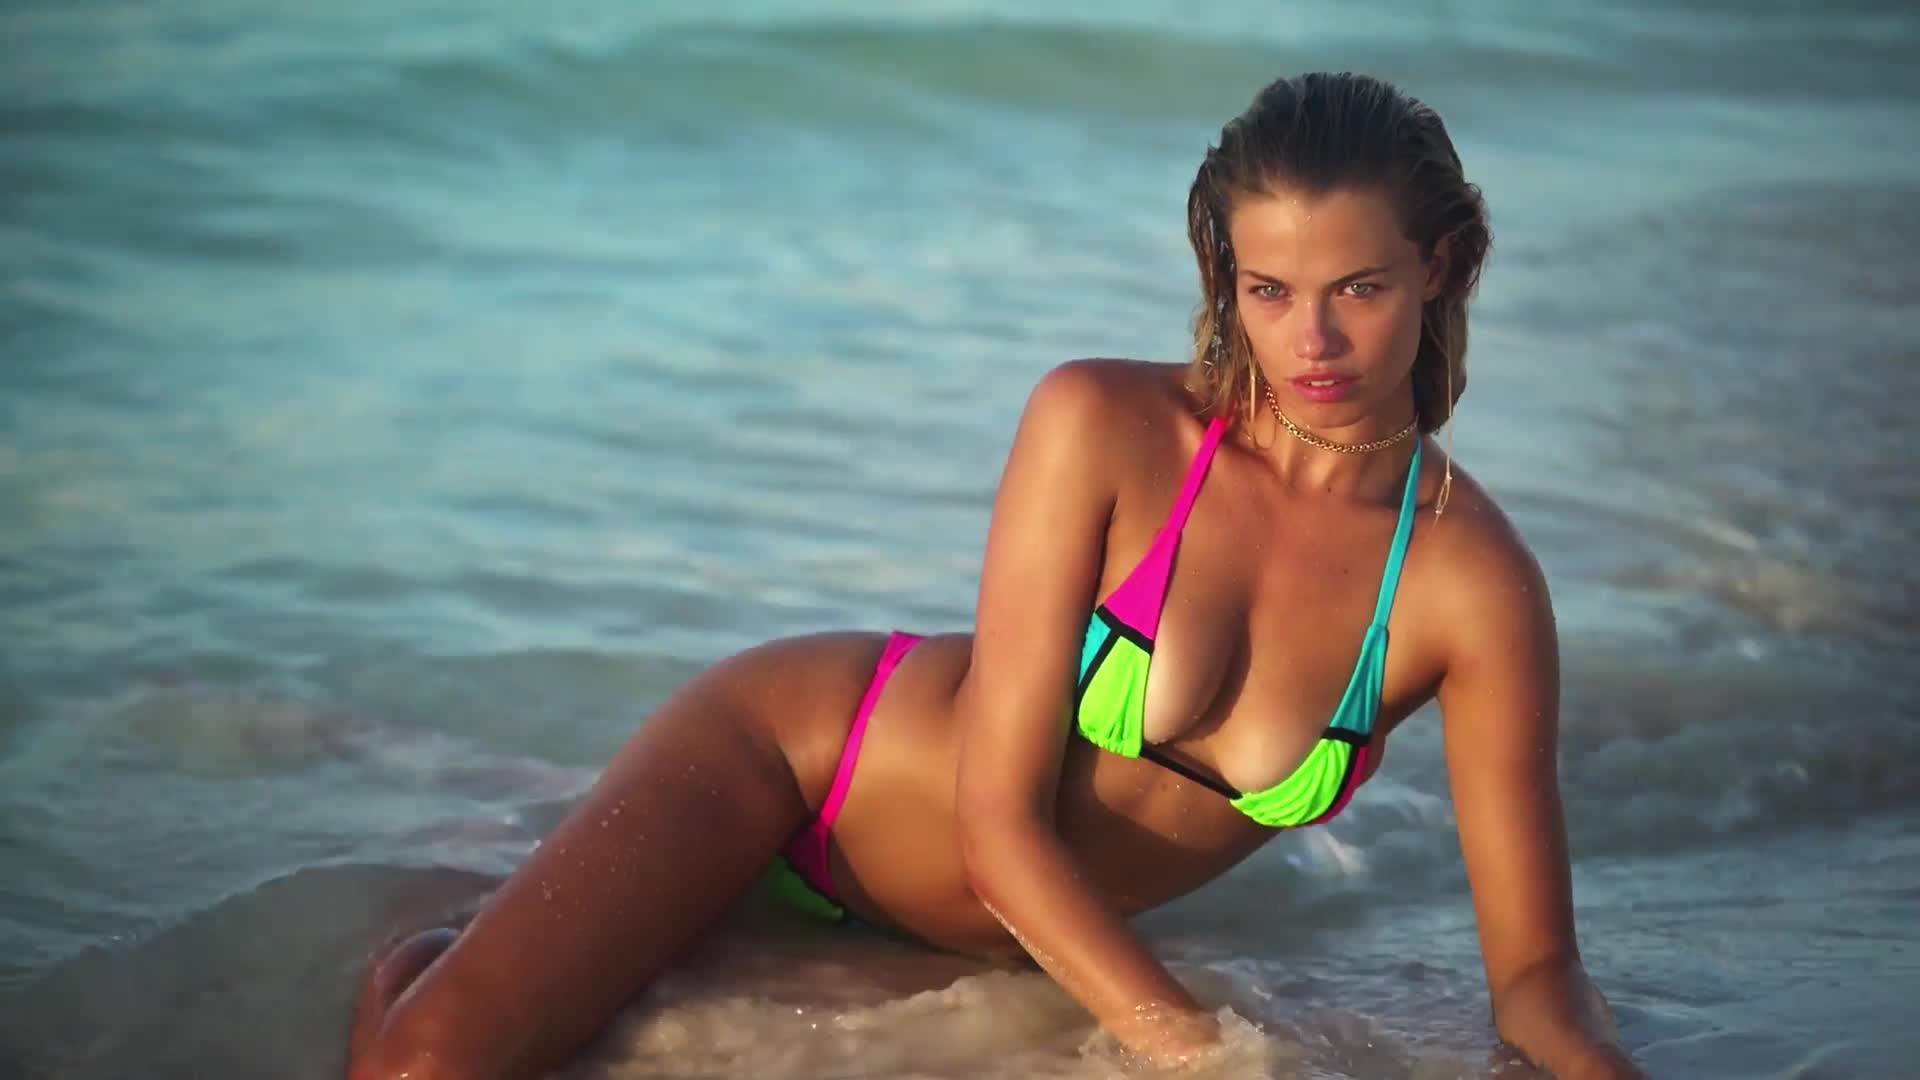 TheFappening Hailey Clauson nude photos 2019